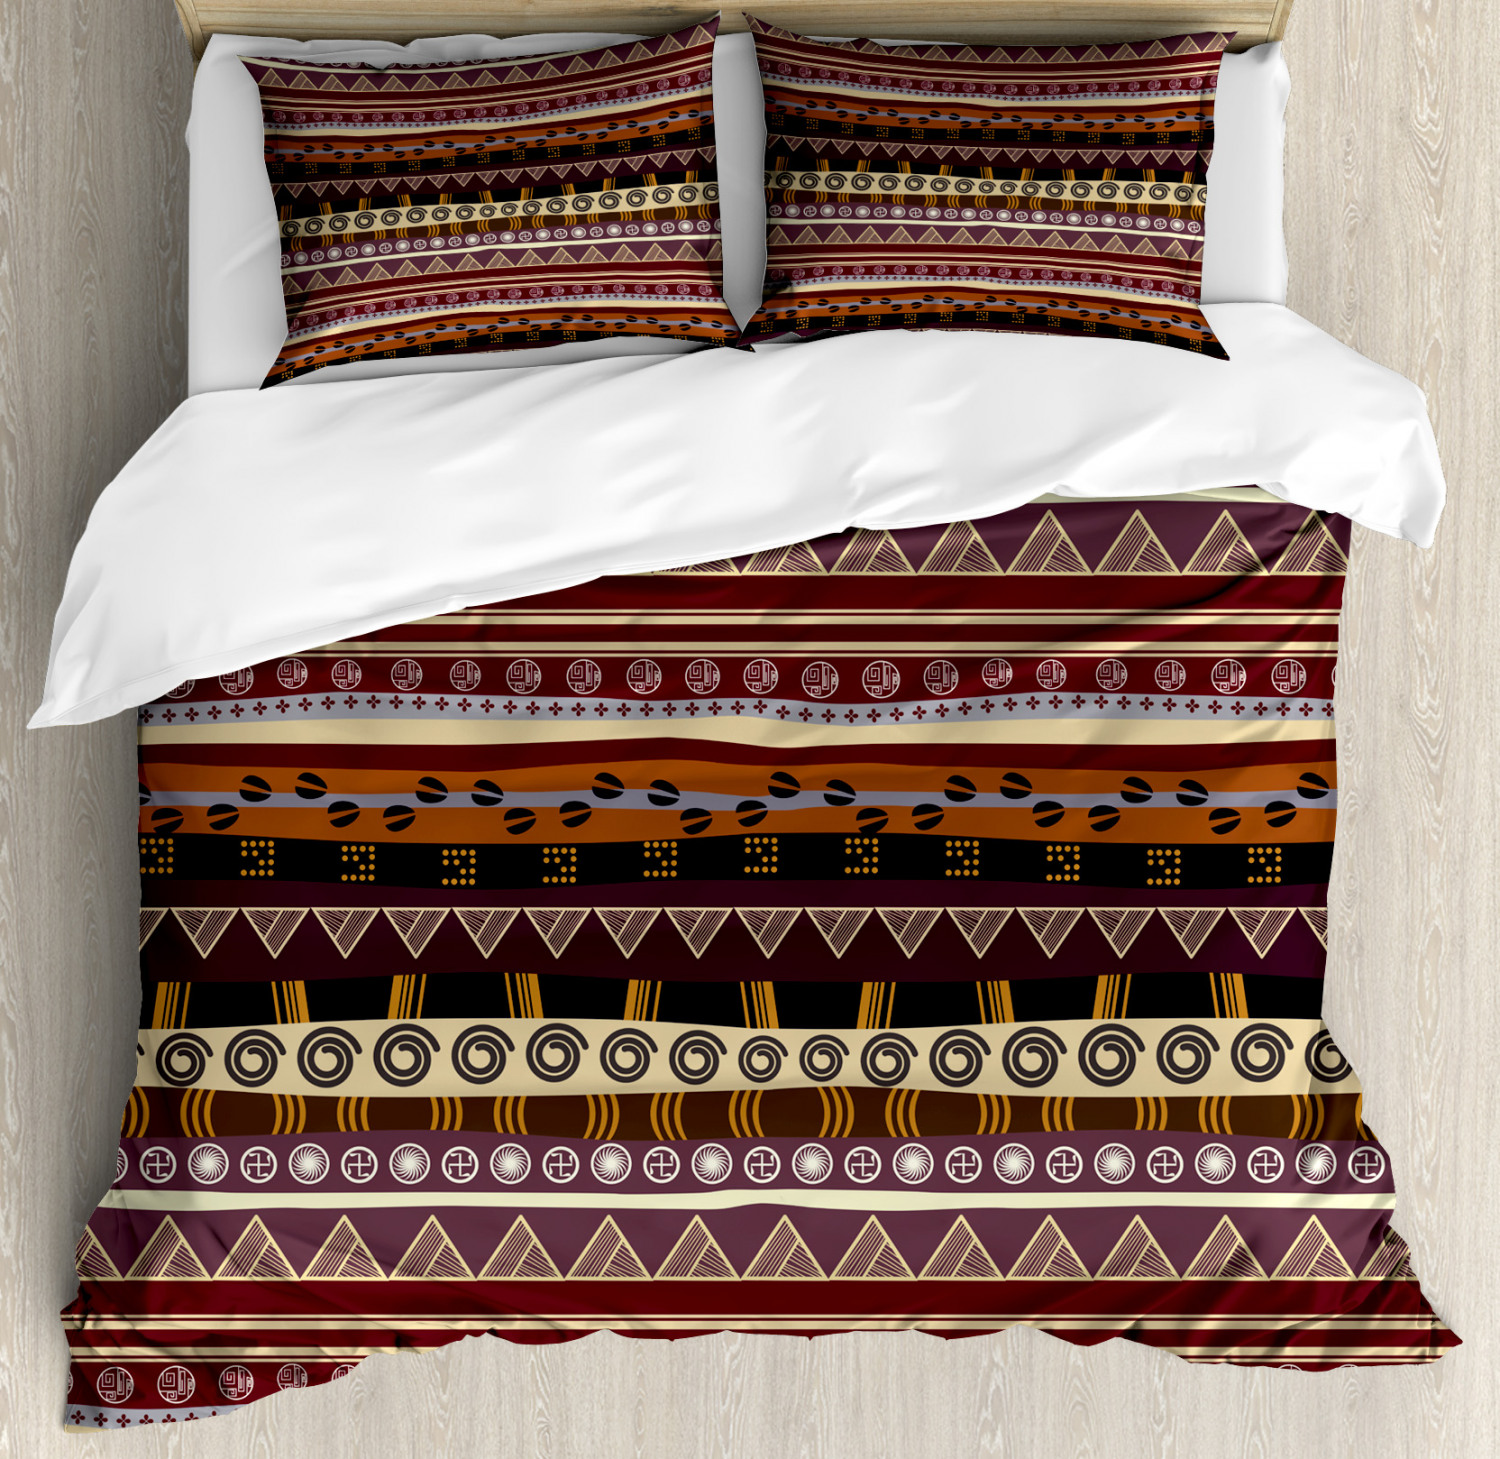 African Duvet Cover Set with Pillow Shams Ethnic Striped Artwork Print